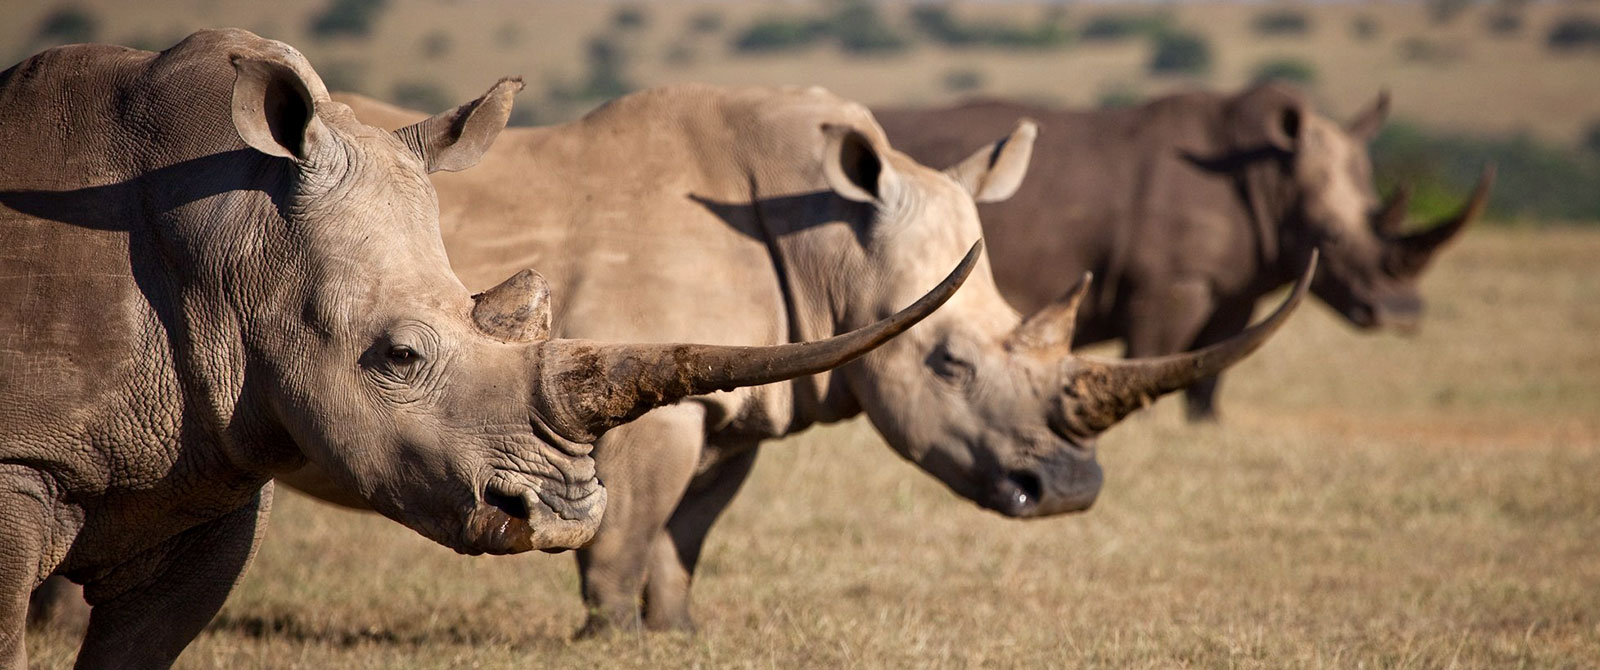 Kenya Safaris - Rhinos on Solio Game Conservancy - Romantic Kenya: Giraffe Manor and Masai Mara Safari